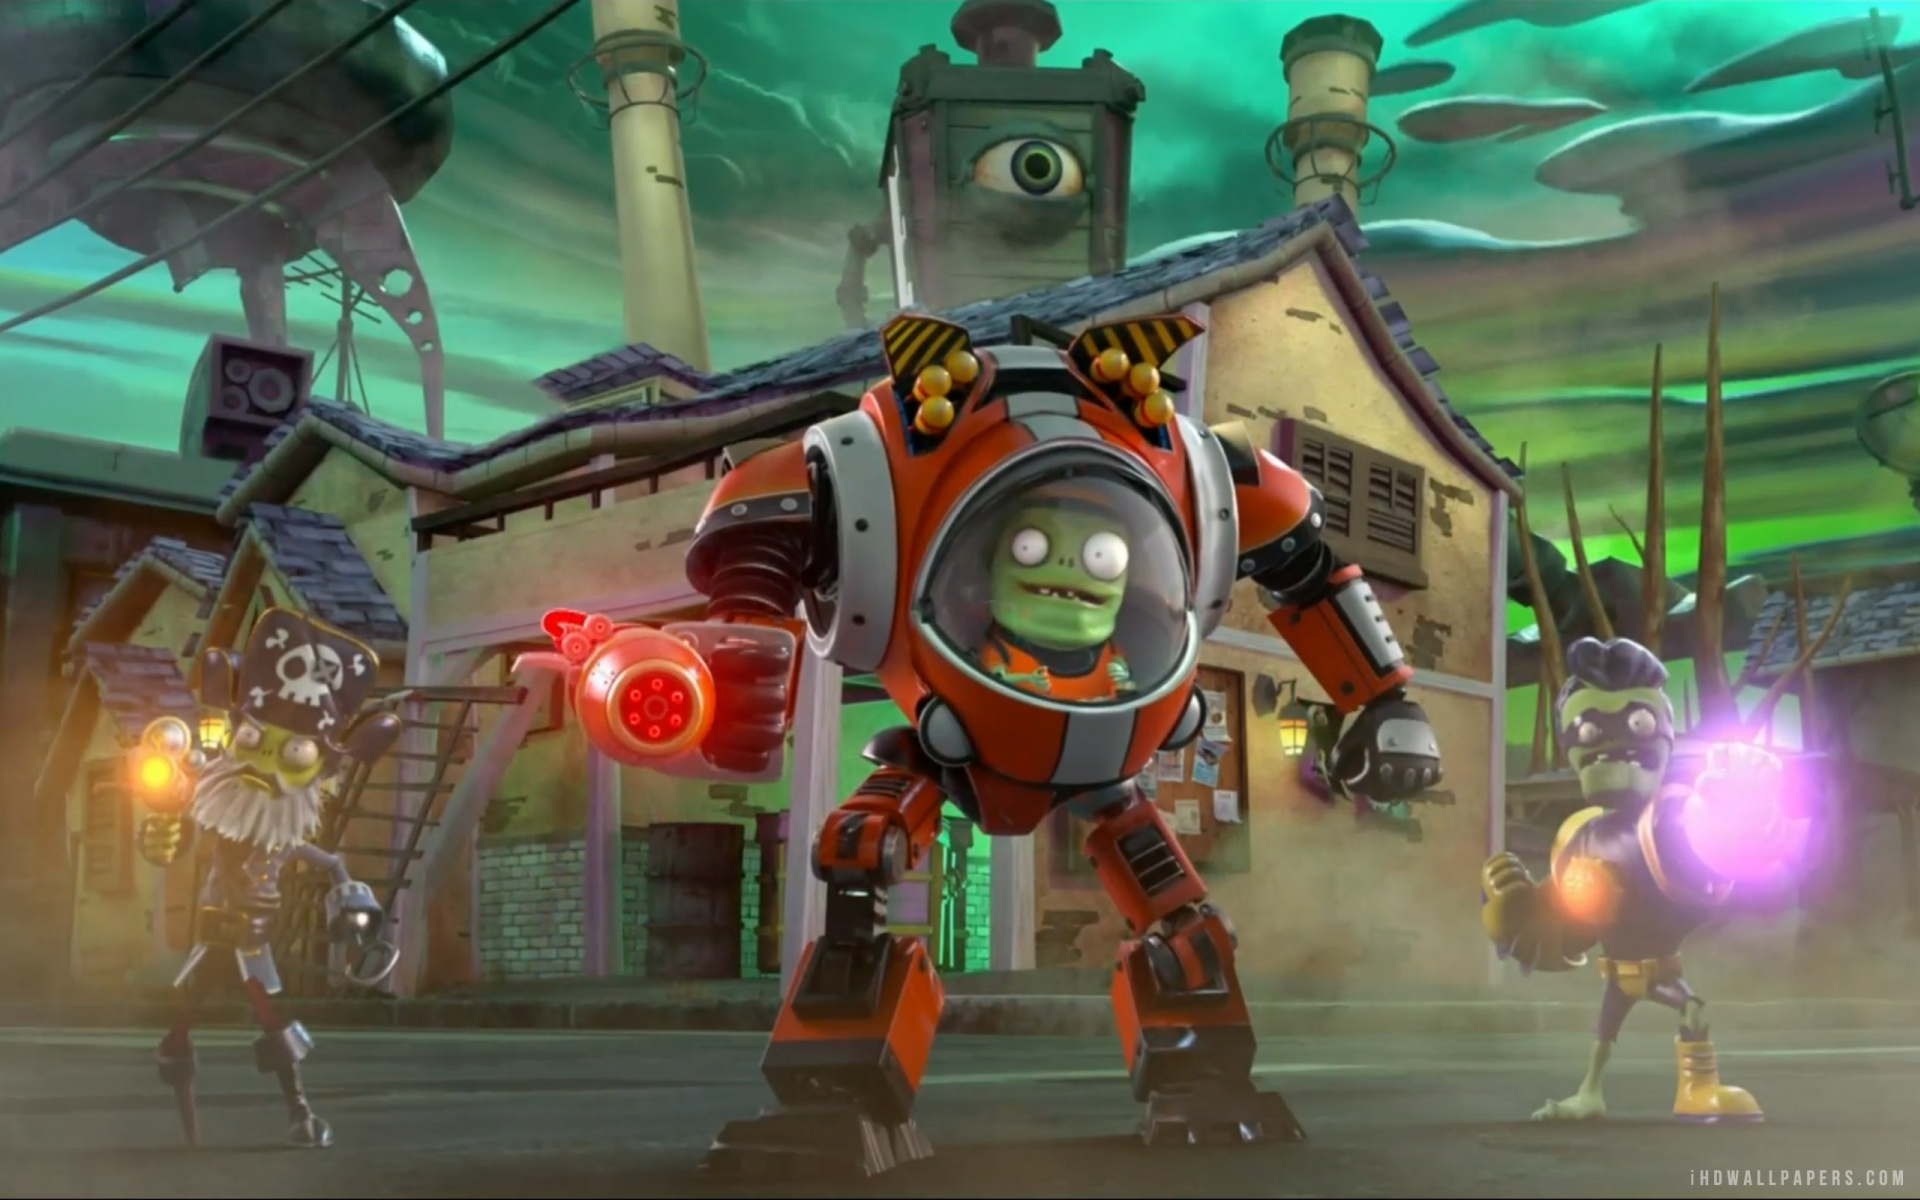 pvz garden warfare 2 wallpaper wallpapersafari